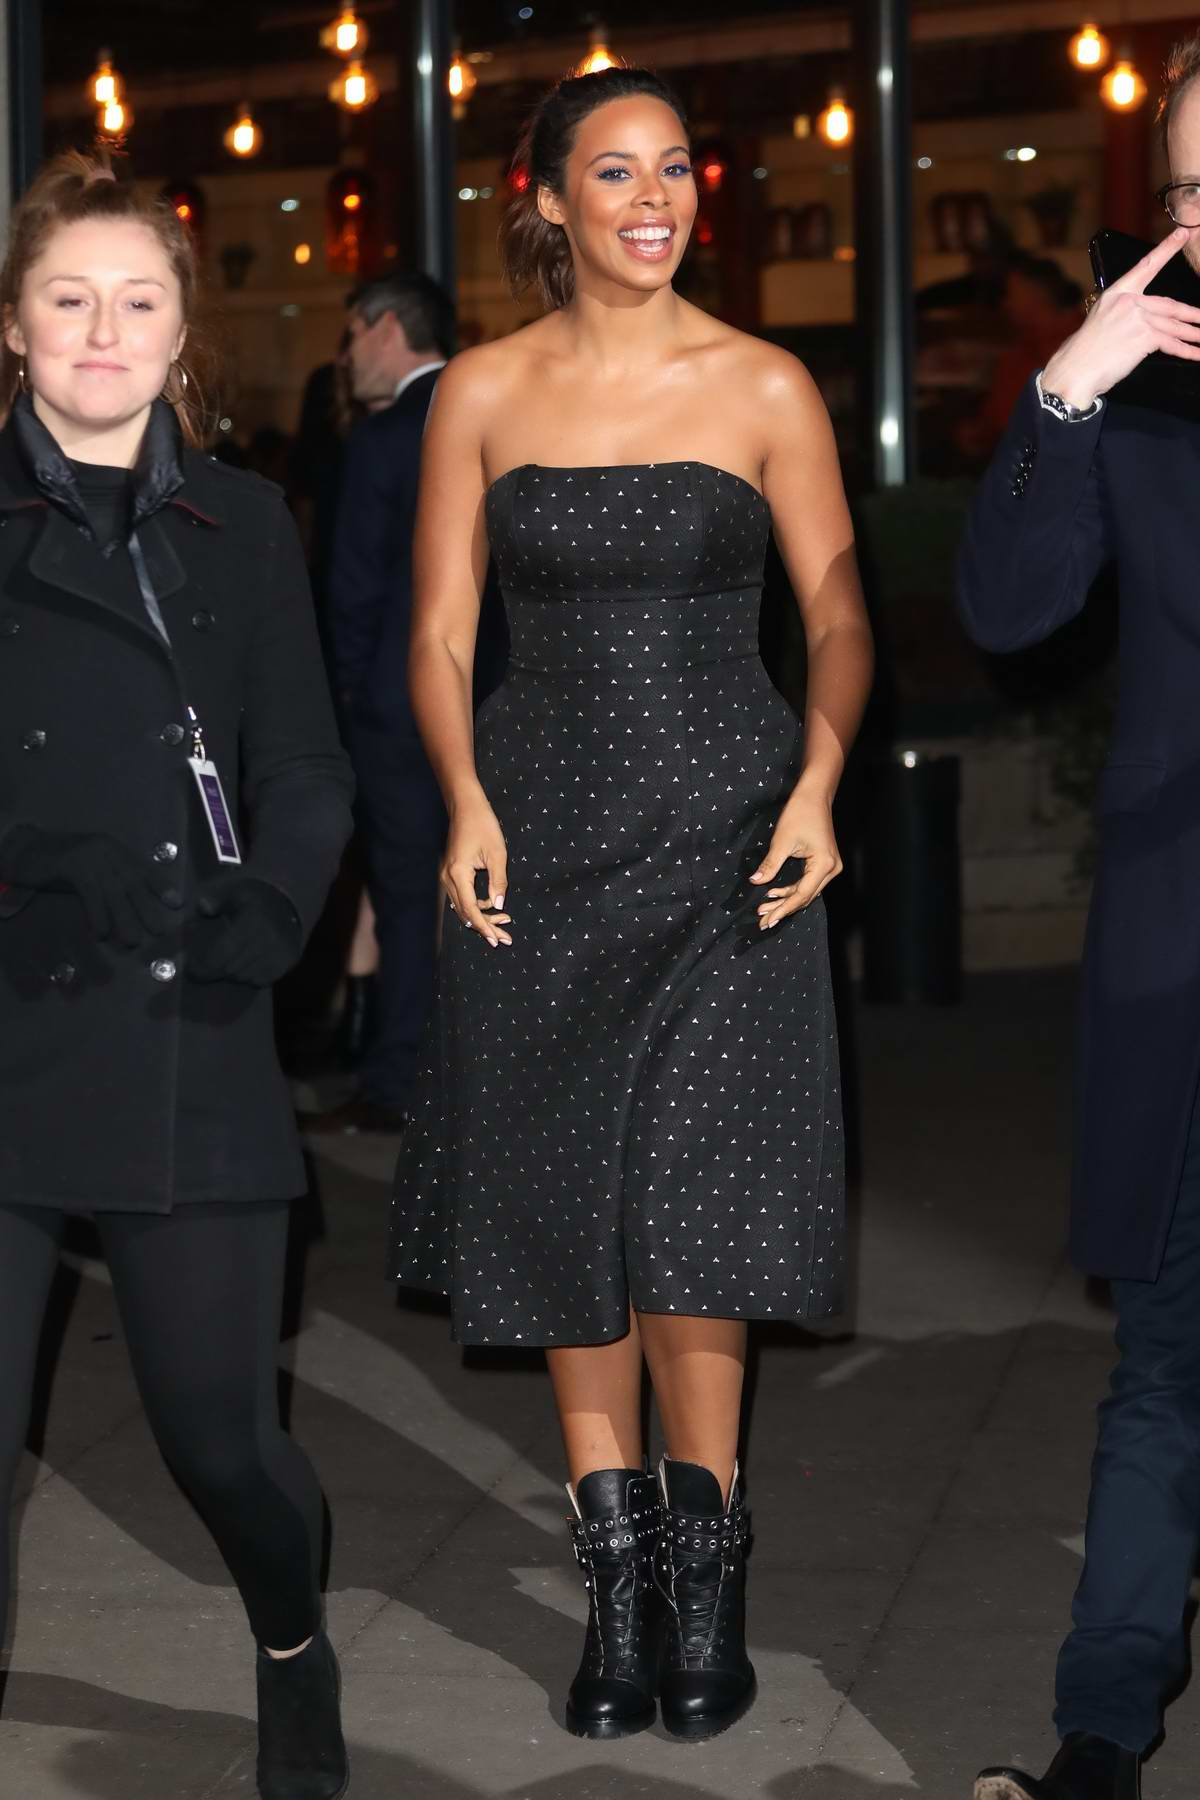 Rochelle Humes at the British Academy Children's Awards in London